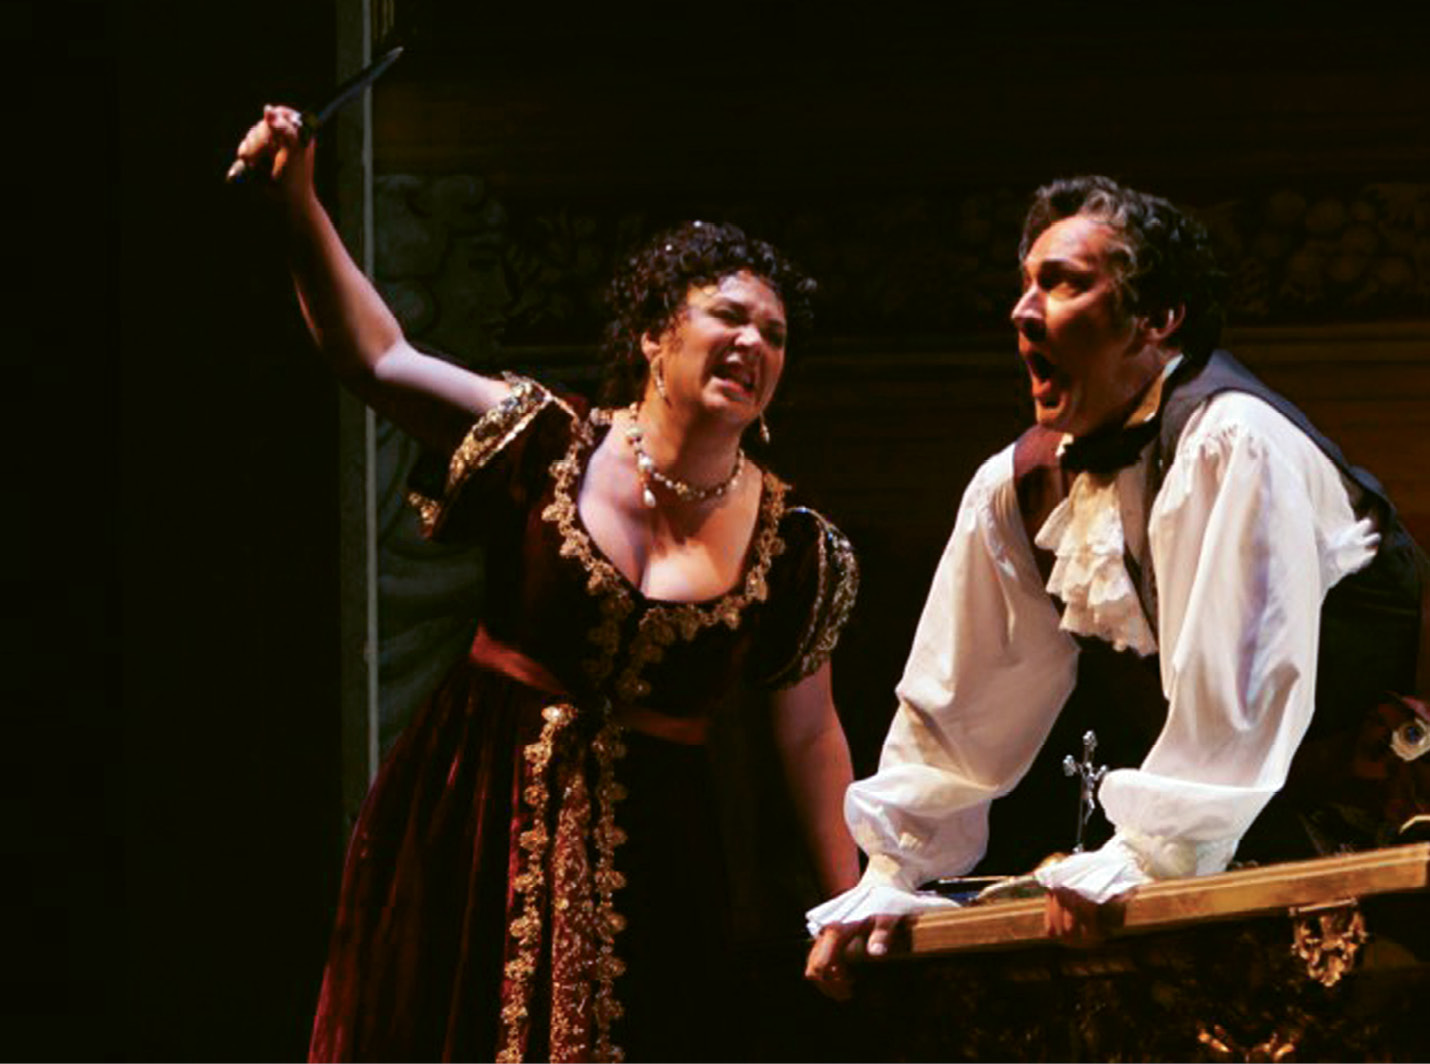 ...the fundraising for which will kick off with a benefit performance of Puccini's Tosca at the Gaillard Center this month